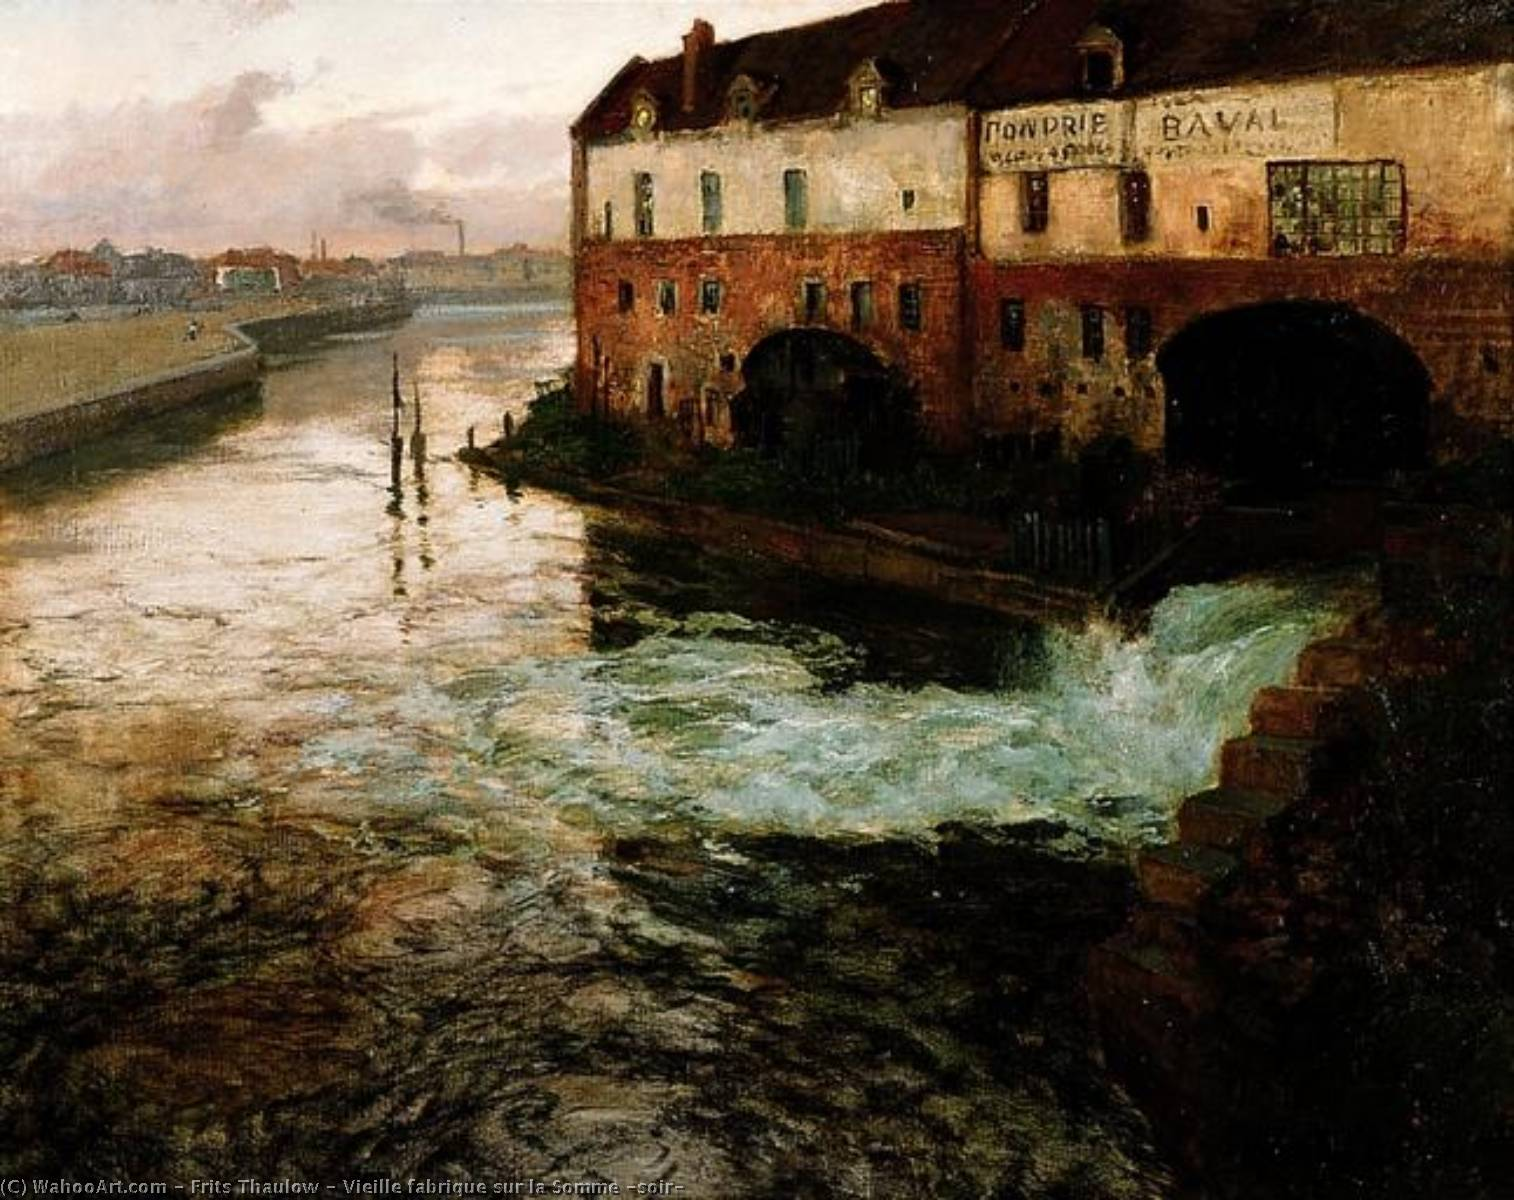 Vieille fabrique sur la Somme (soir) by Frits Thaulow (1847-1906, Norway) | Famous Paintings Reproductions | WahooArt.com